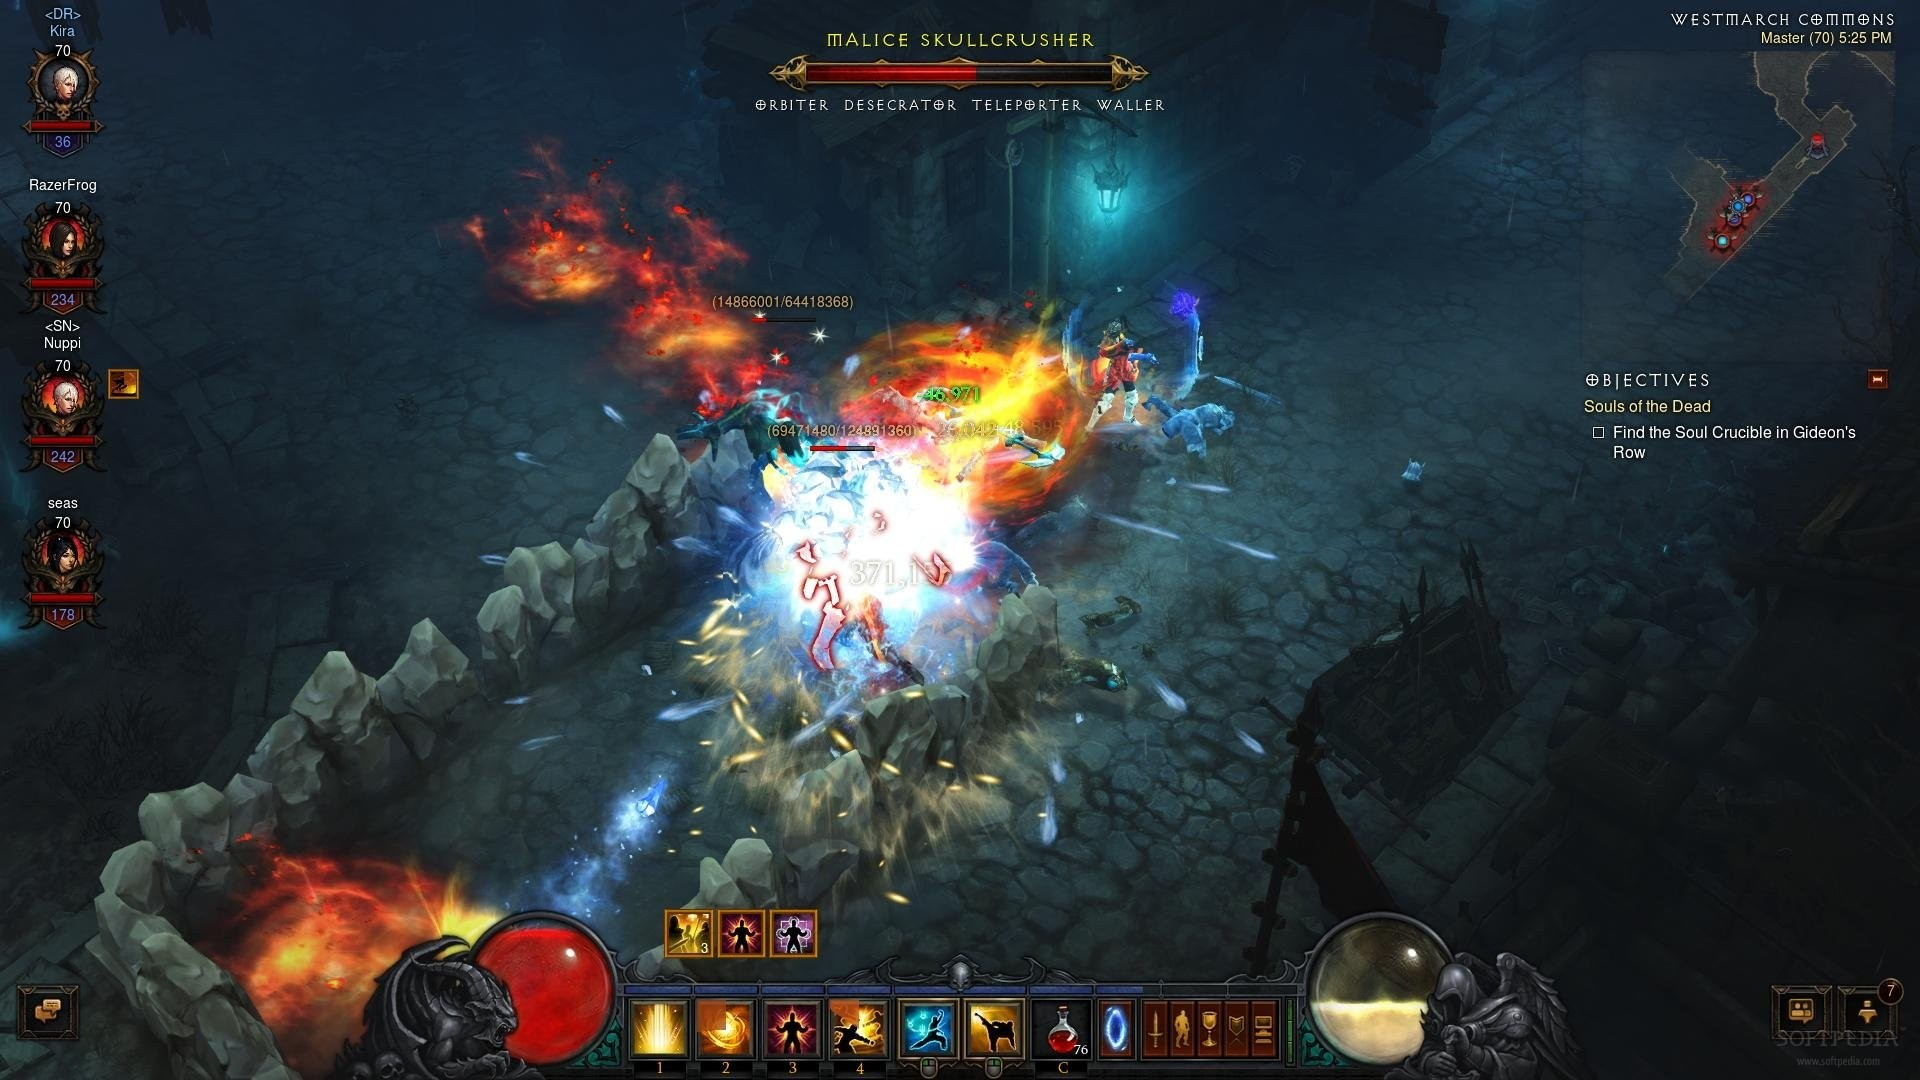 Diablo 3 Gets New Hotfix to Solve Issues and Prevent Exploits